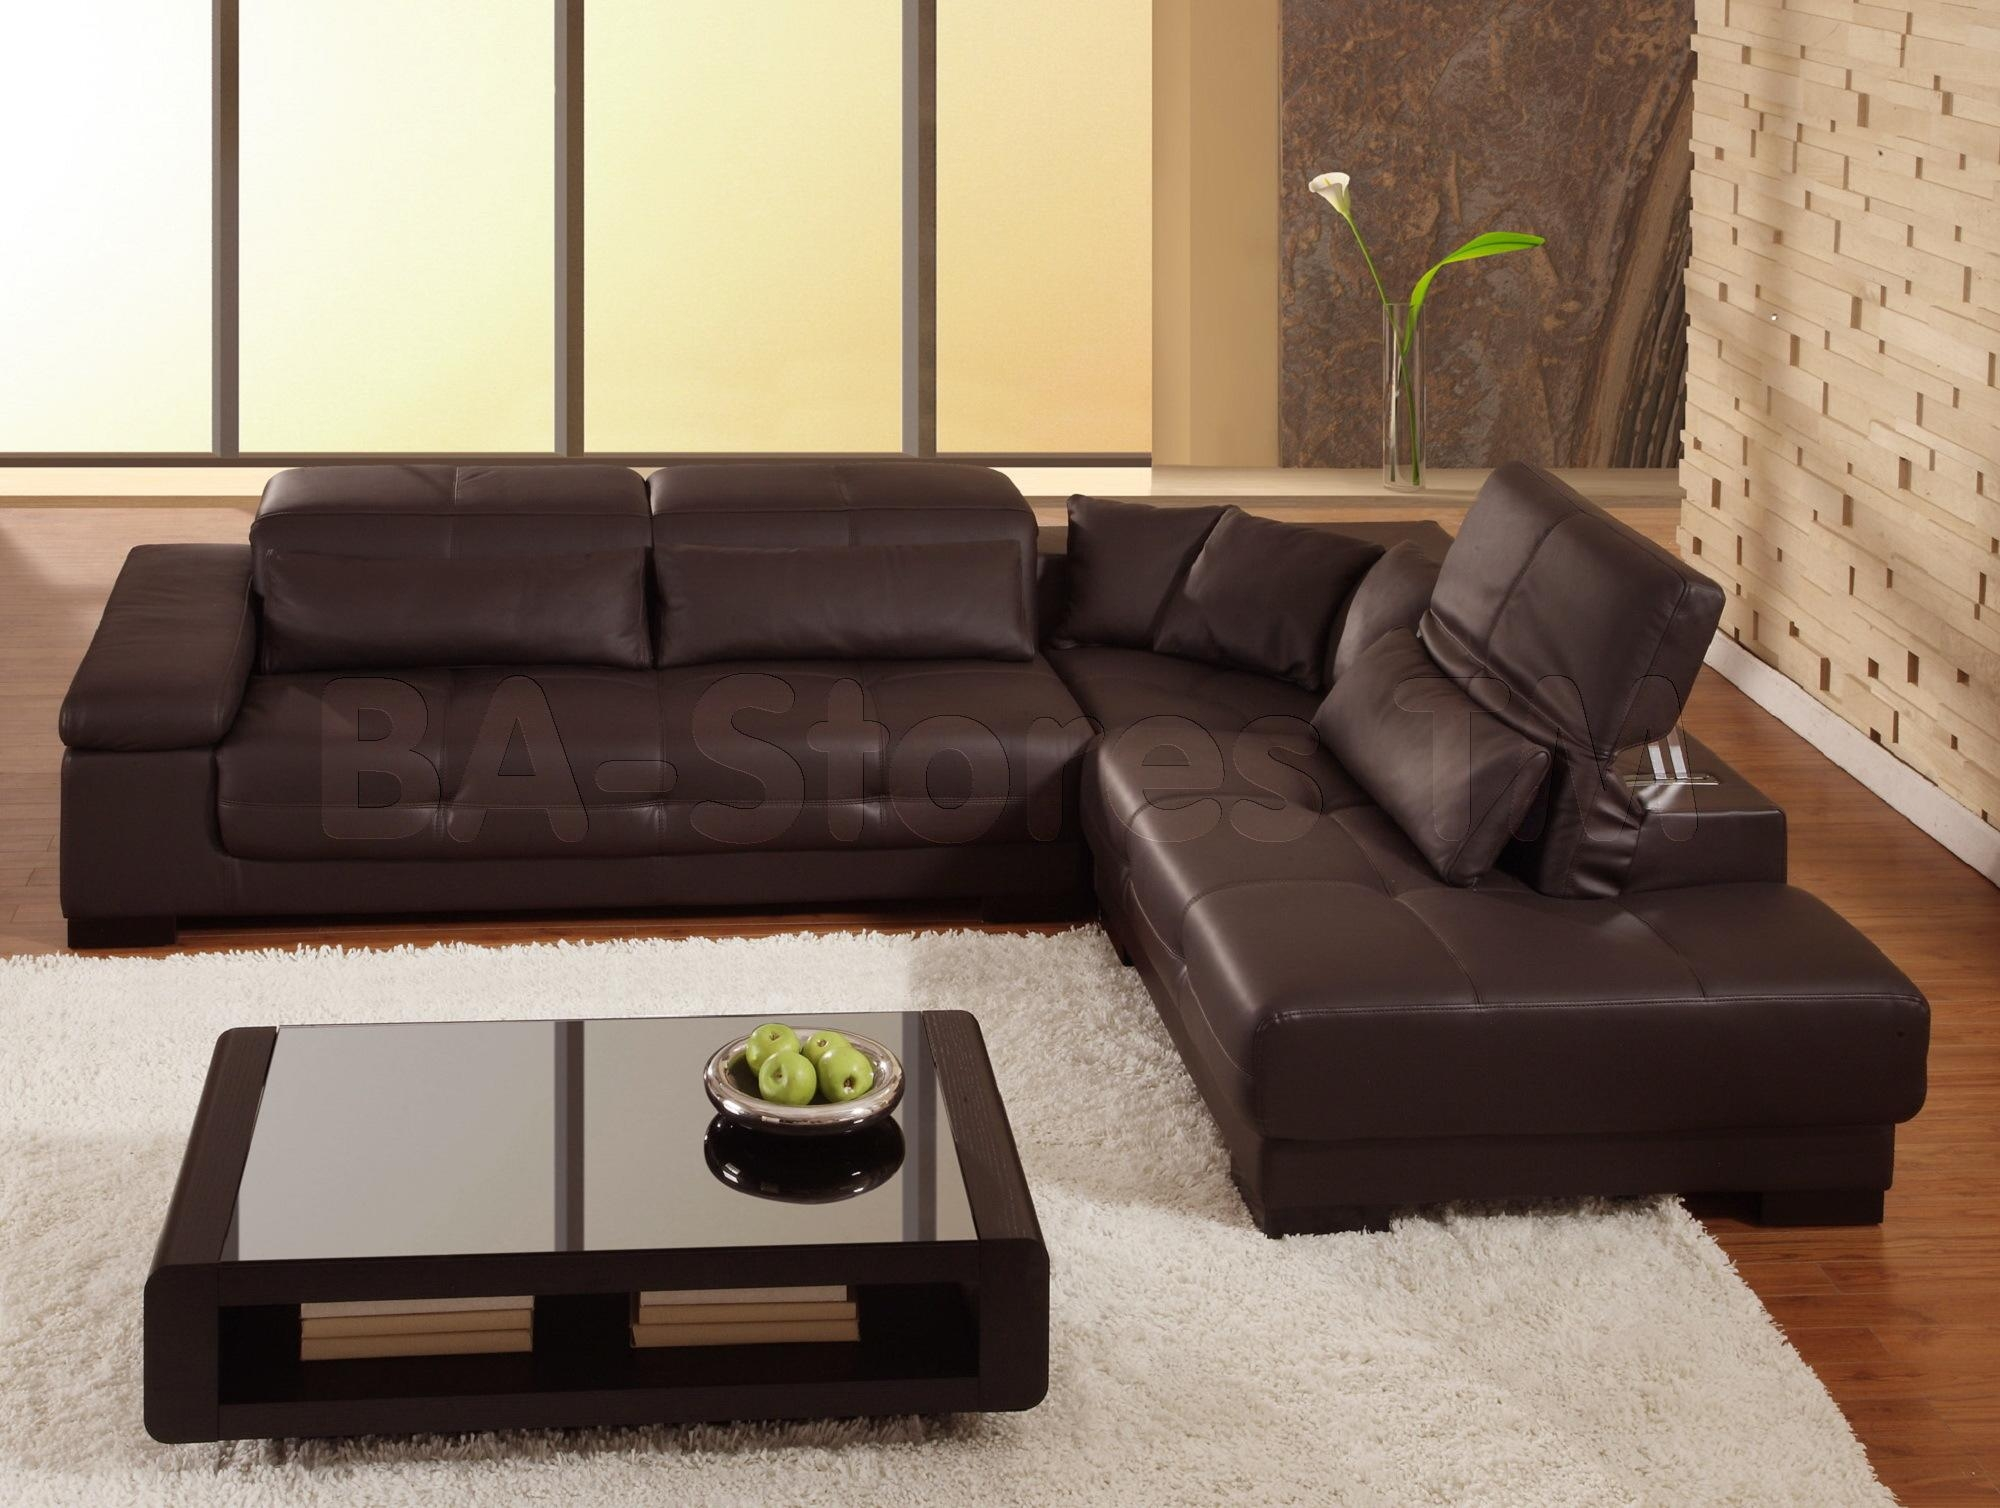 Velvet Sofas Sectionals - Leather Sectional Sofa intended for Velvet Sofas Sectionals